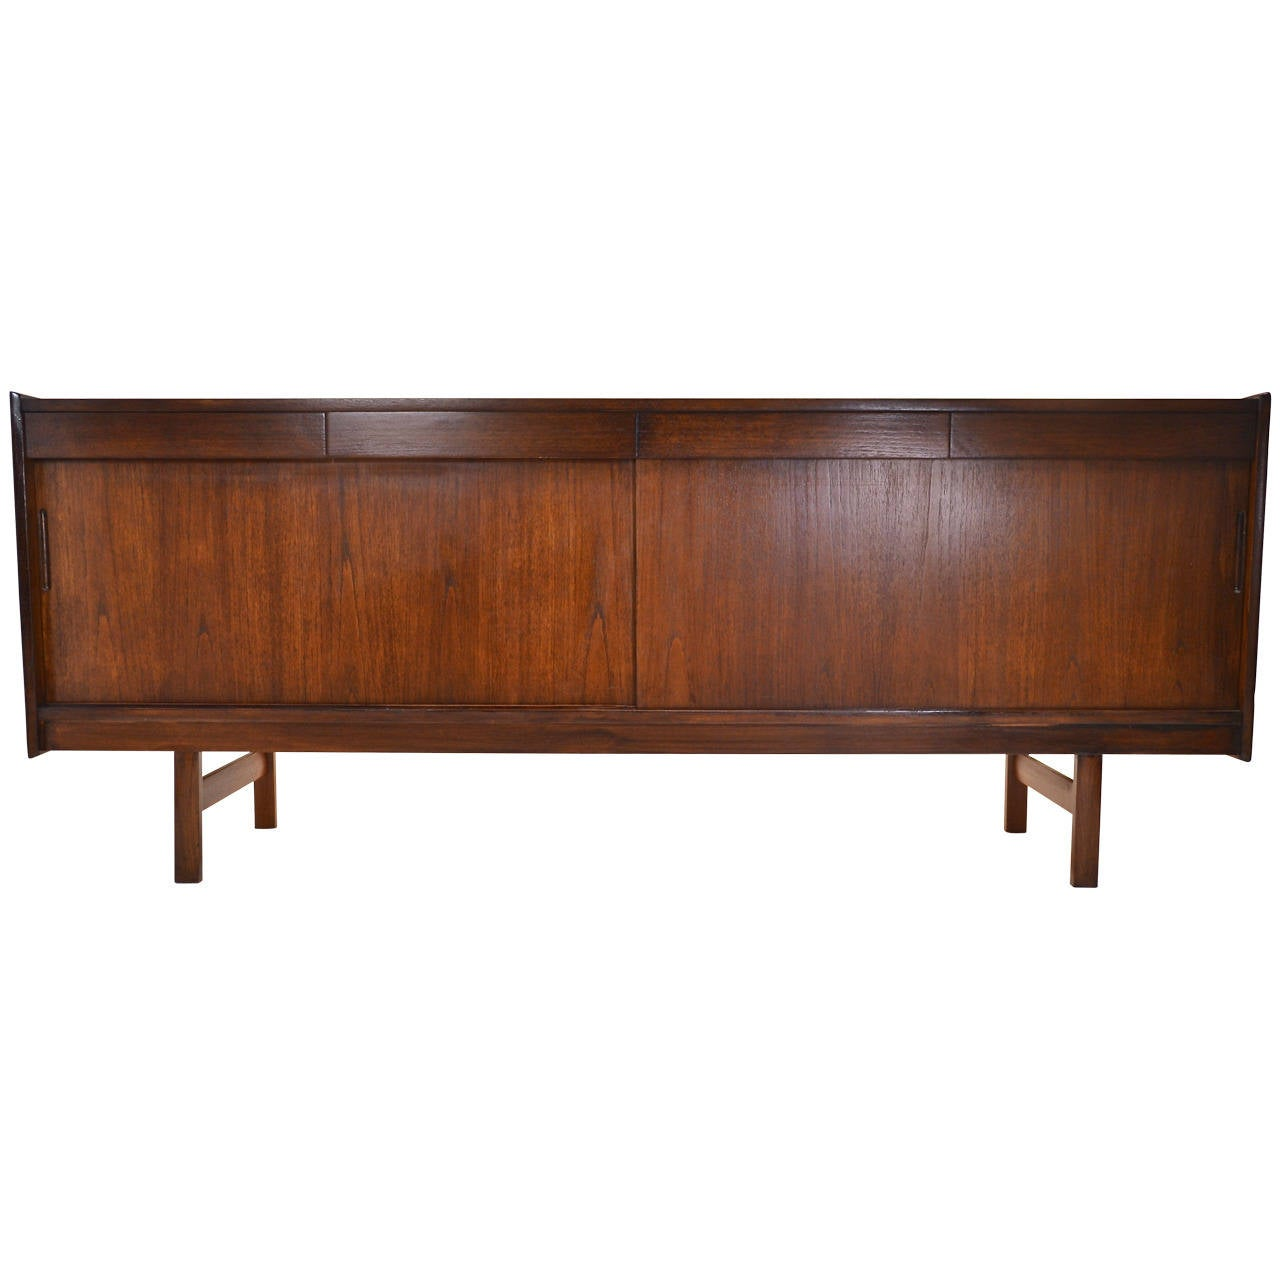 Scandinavian modern teak sideboard circa 1960s at 1stdibs for Sideboard scandi